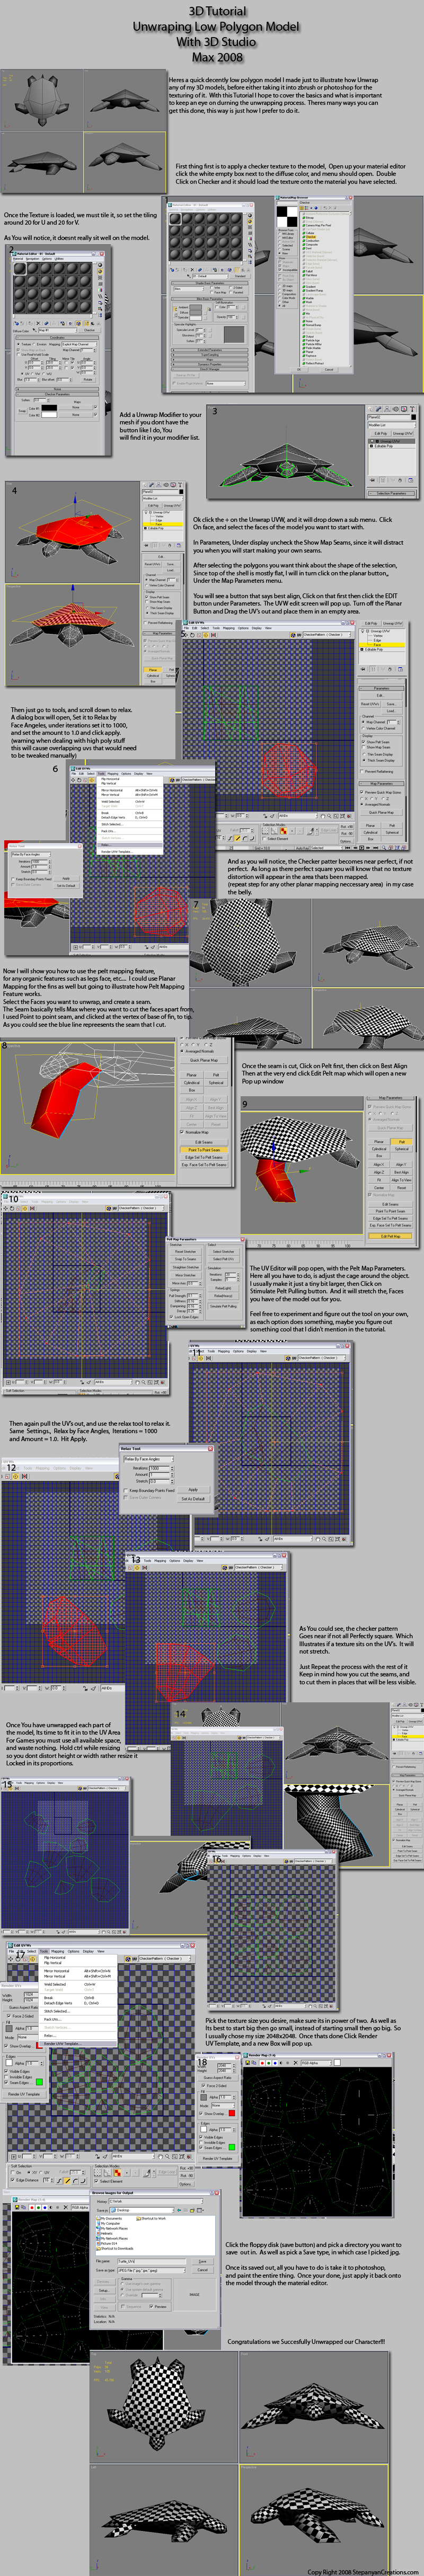 3d max unwrap tutorial by 3d asuarus on deviantart for Tutorial 3d max